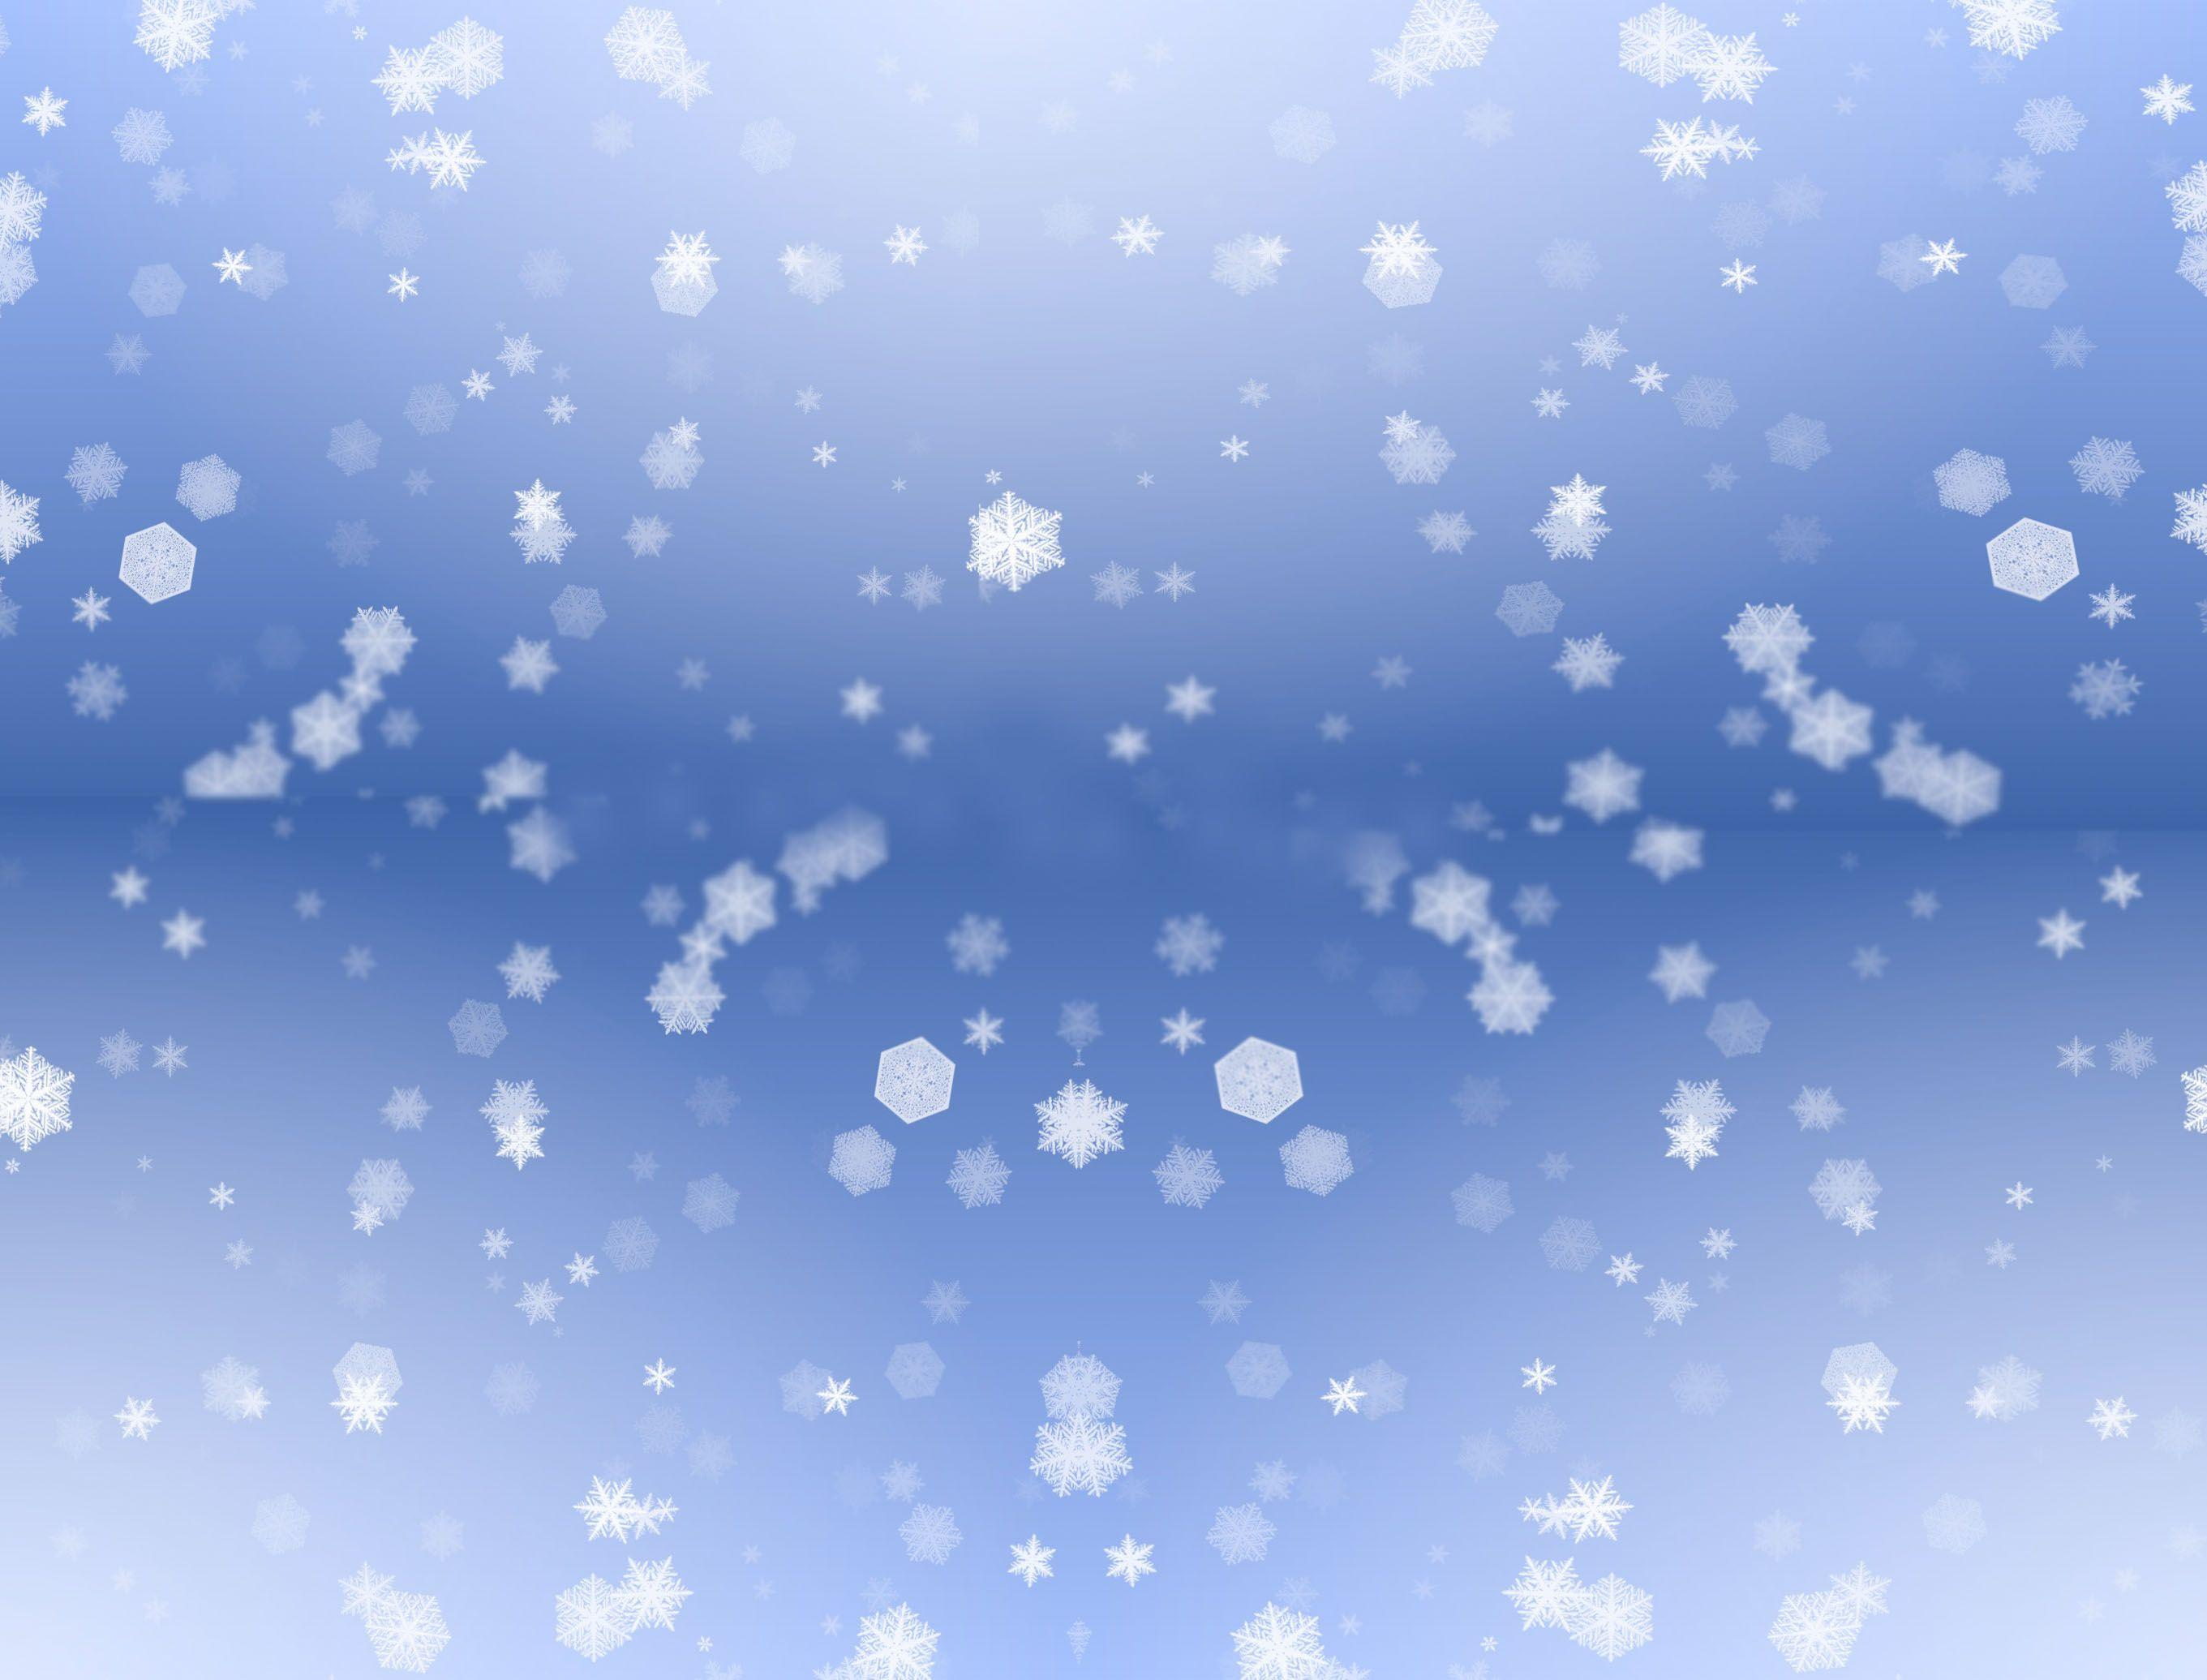 Fortnite Wallpaper Falling From The Sky Snow Backgrounds Wallpaper Cave